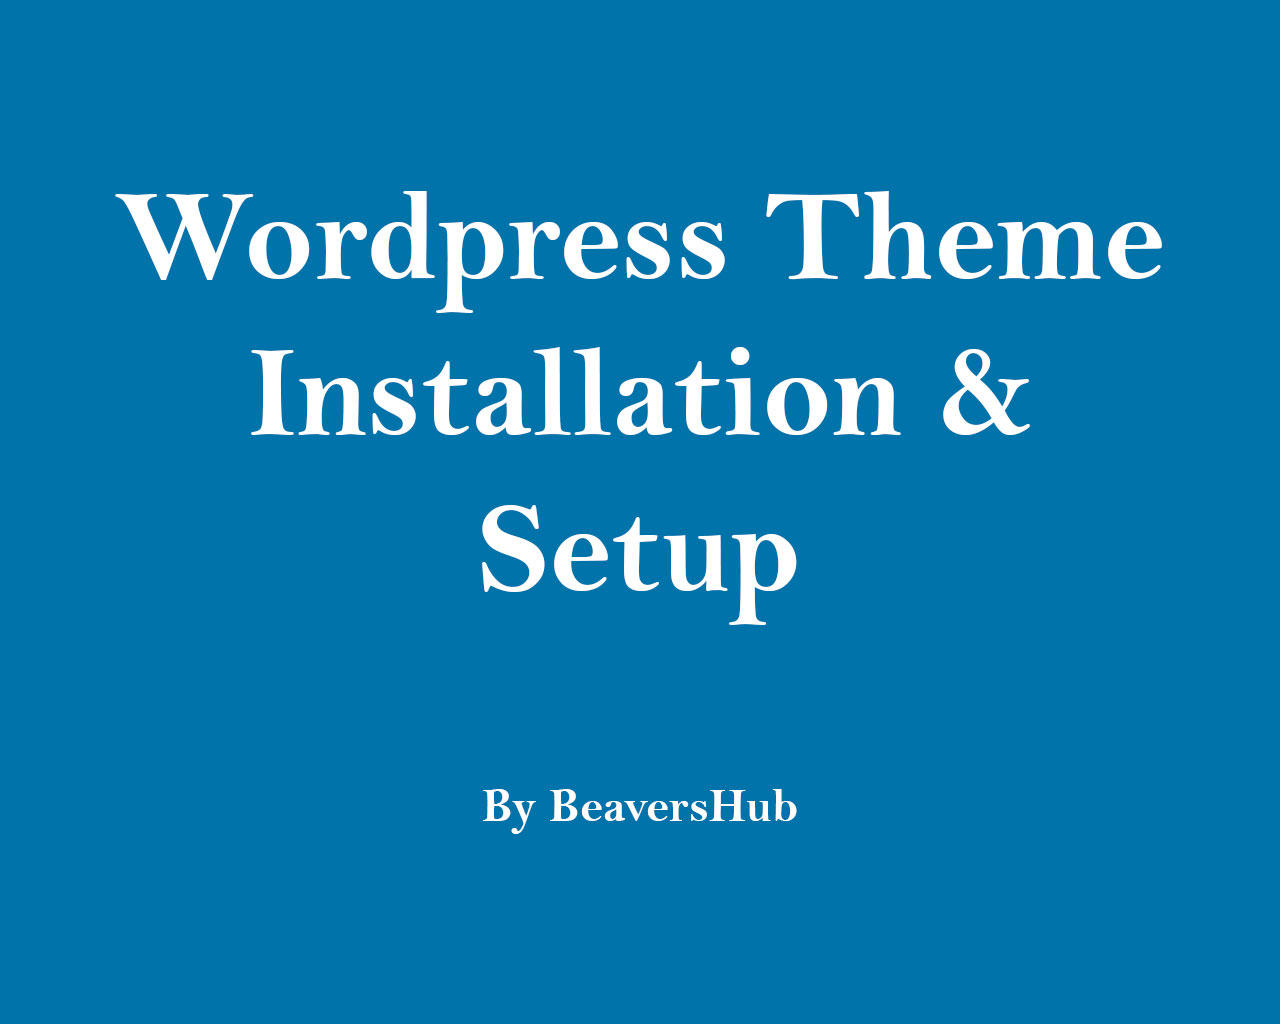 Express WordPress Theme Installation & Setup by ArtyChristina - 105797